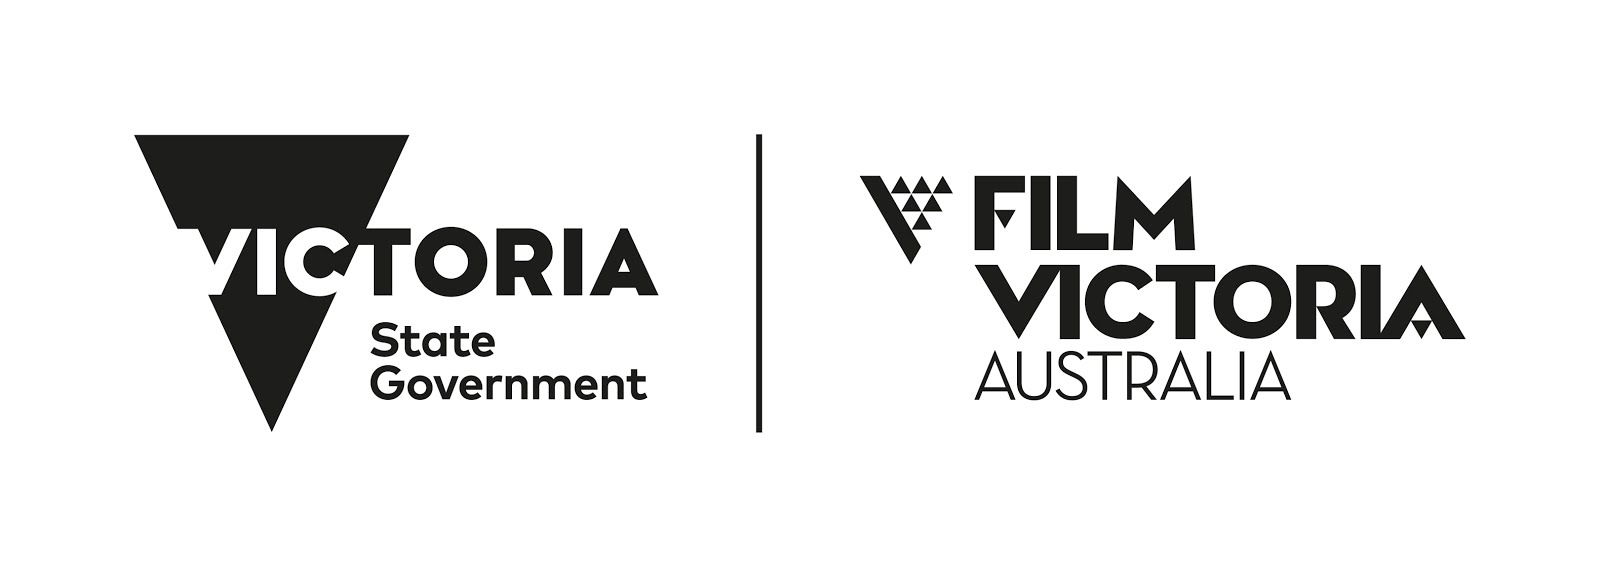 Supported By Film Victoria